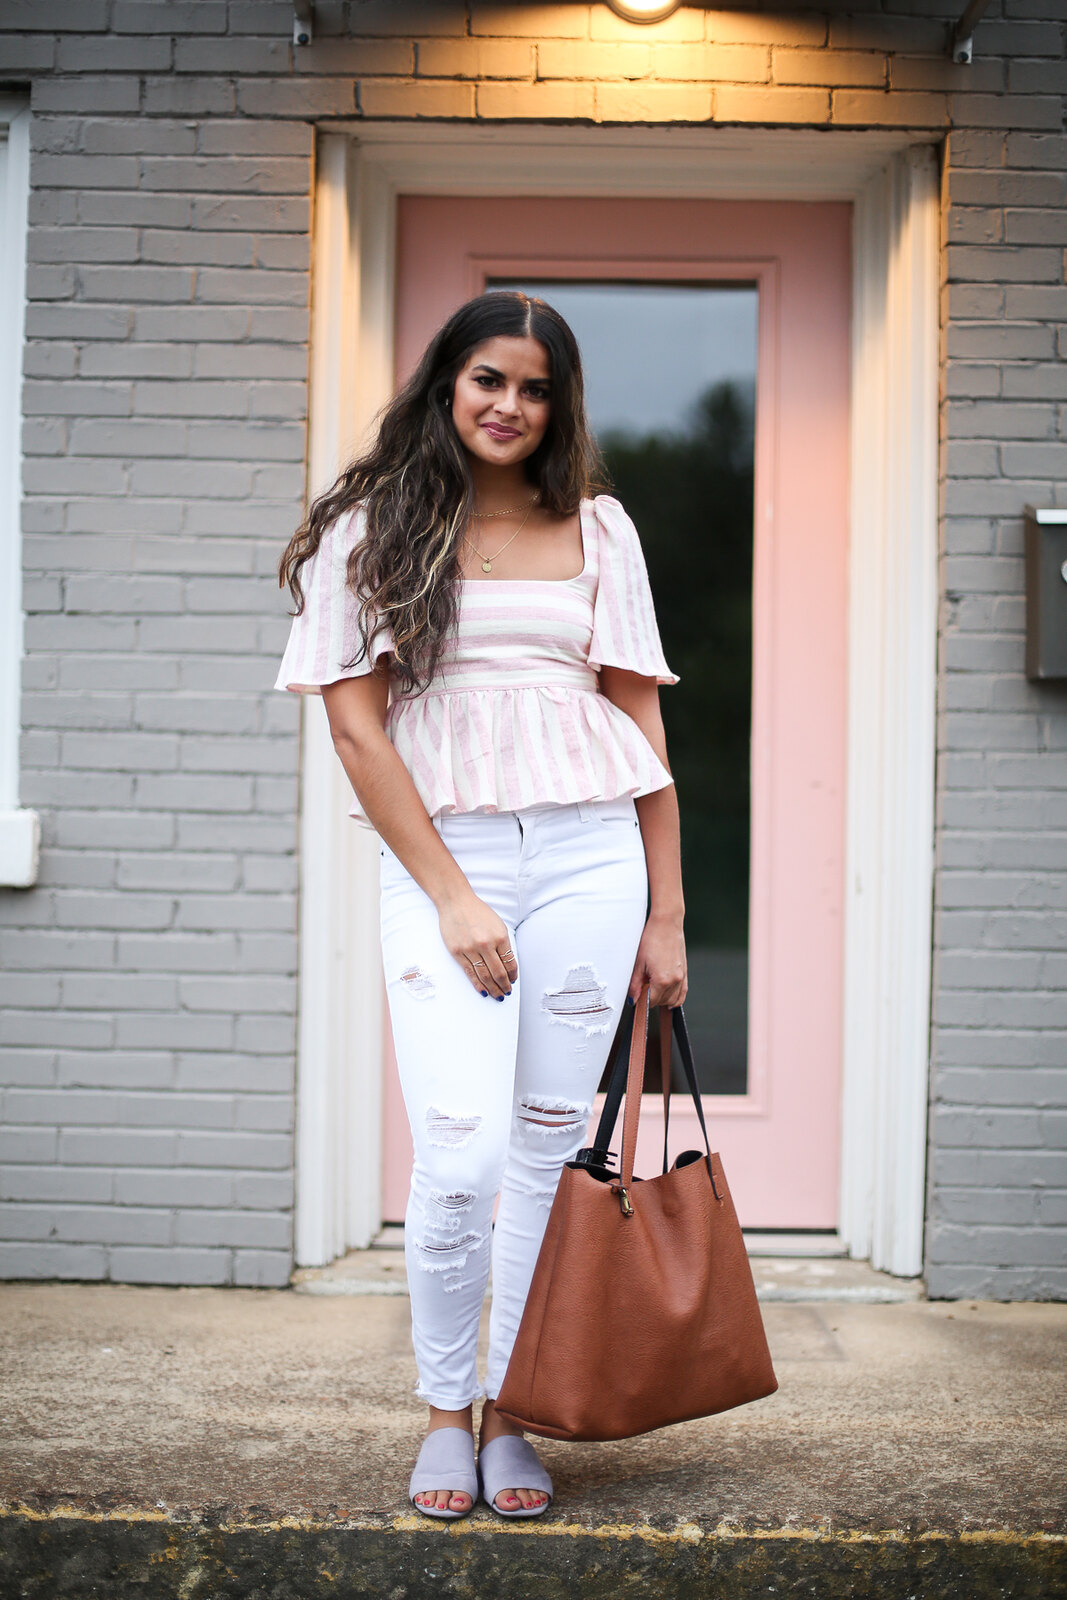 Priya the Blog, Nashville fashion blog, Nashville fashion blogger, Nashville style blog, Nashville style blogger, Summer outfit, lavender slides, Zara pink striped blouse, Summer outfit with white jeans, white Old Navy Rockstar denim, lavender suede slides, Summer outfit, Zara pink striped linen blouse